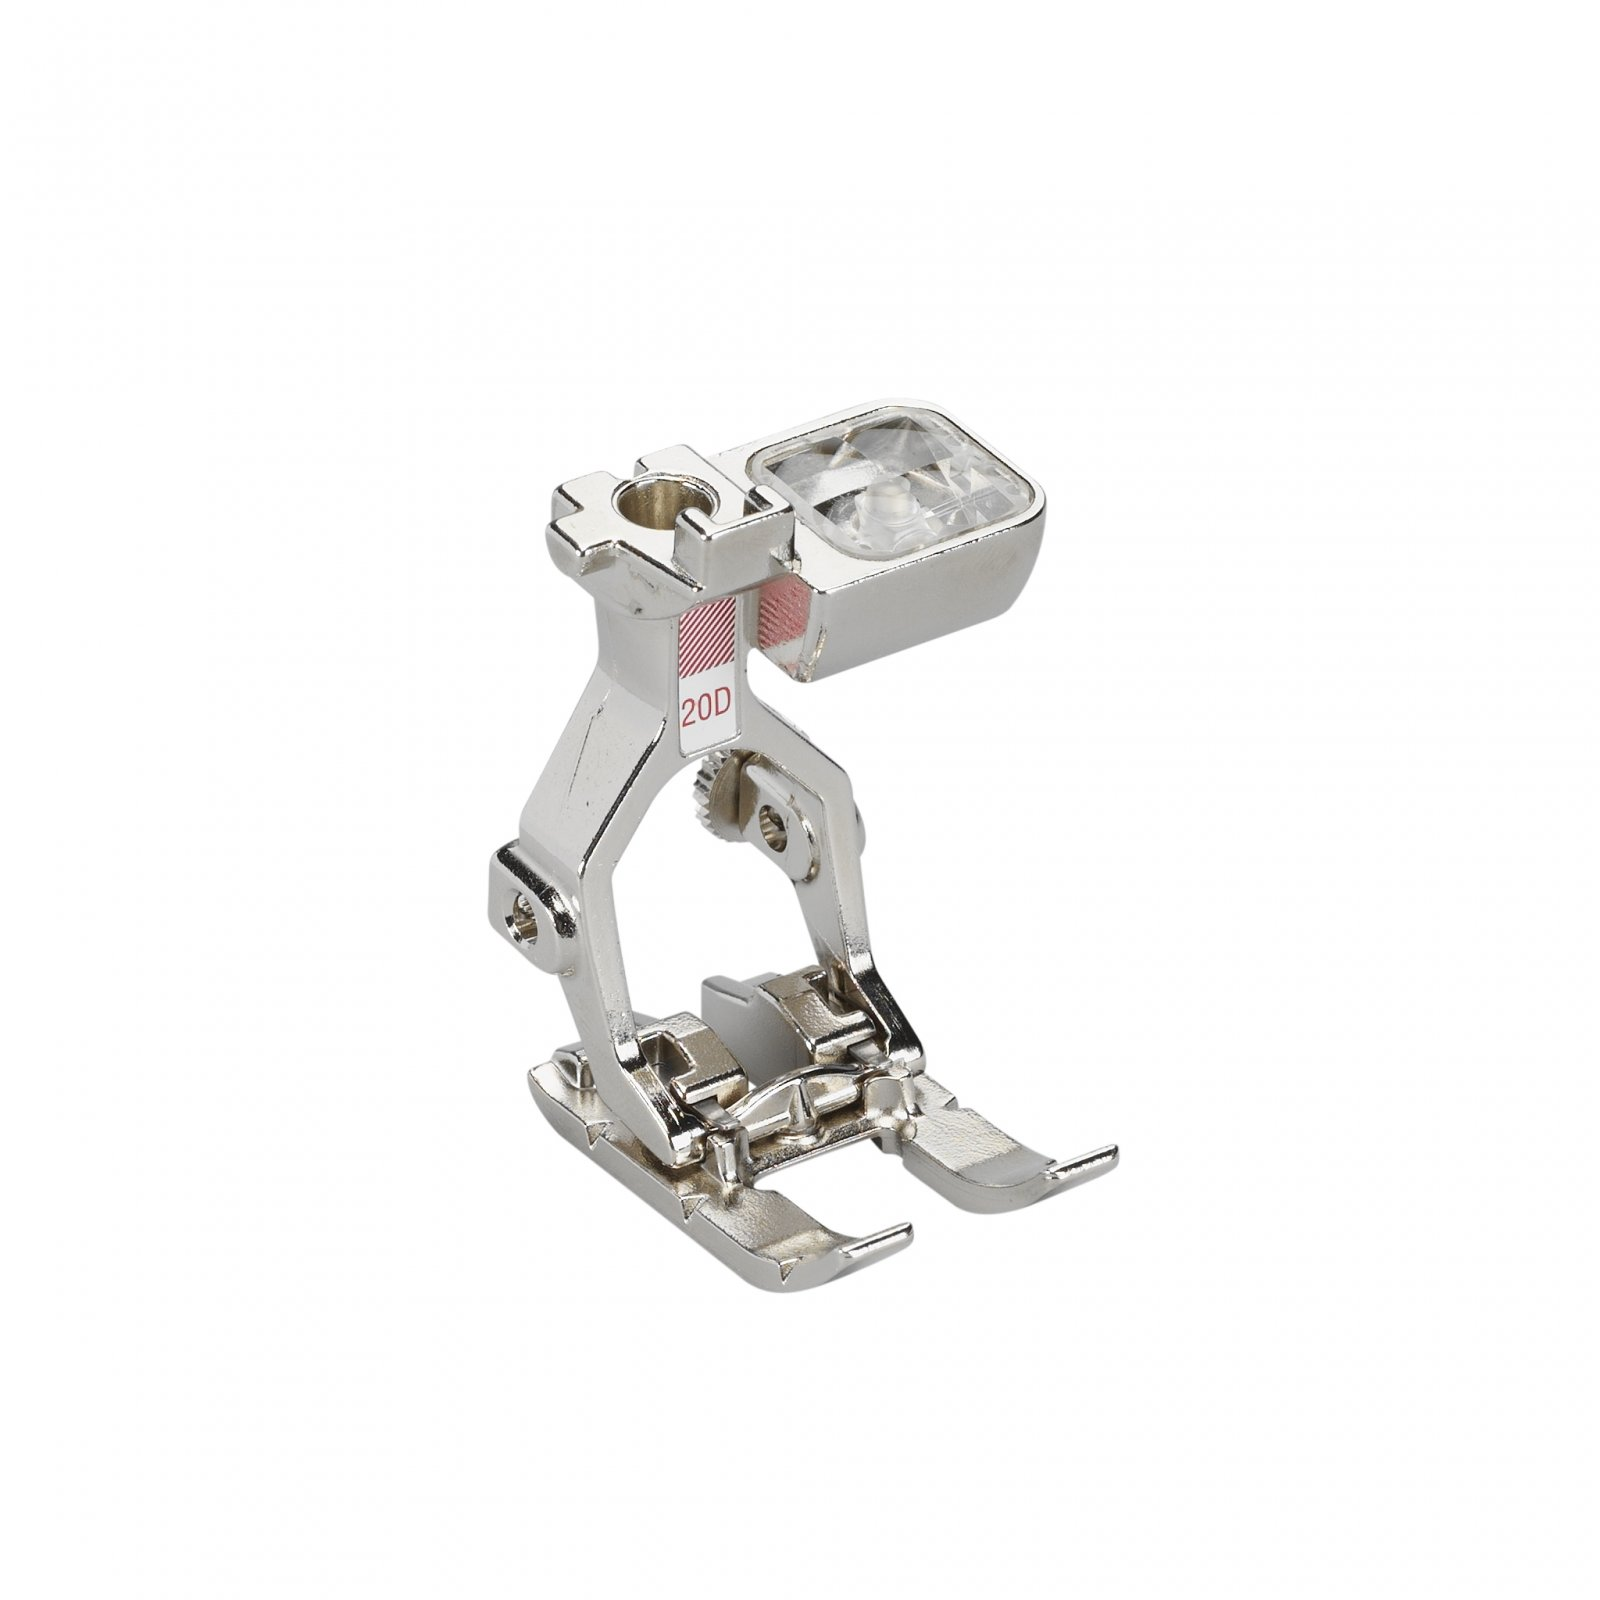 Foot #20D Open Embroidery Dual Feed, Classic